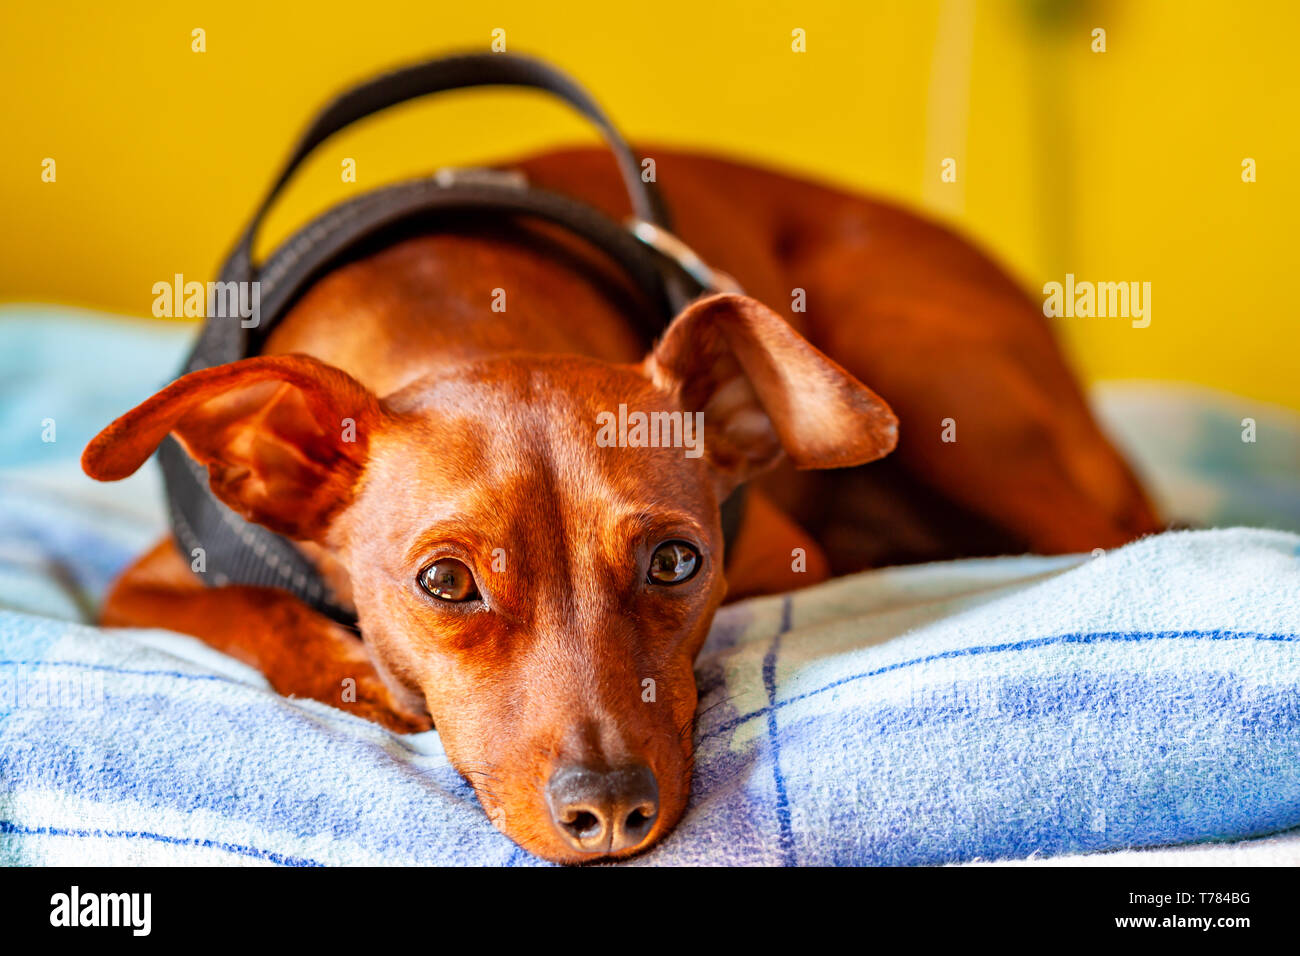 Dog breed miniature pinscher lying on the carpet. - Stock Image